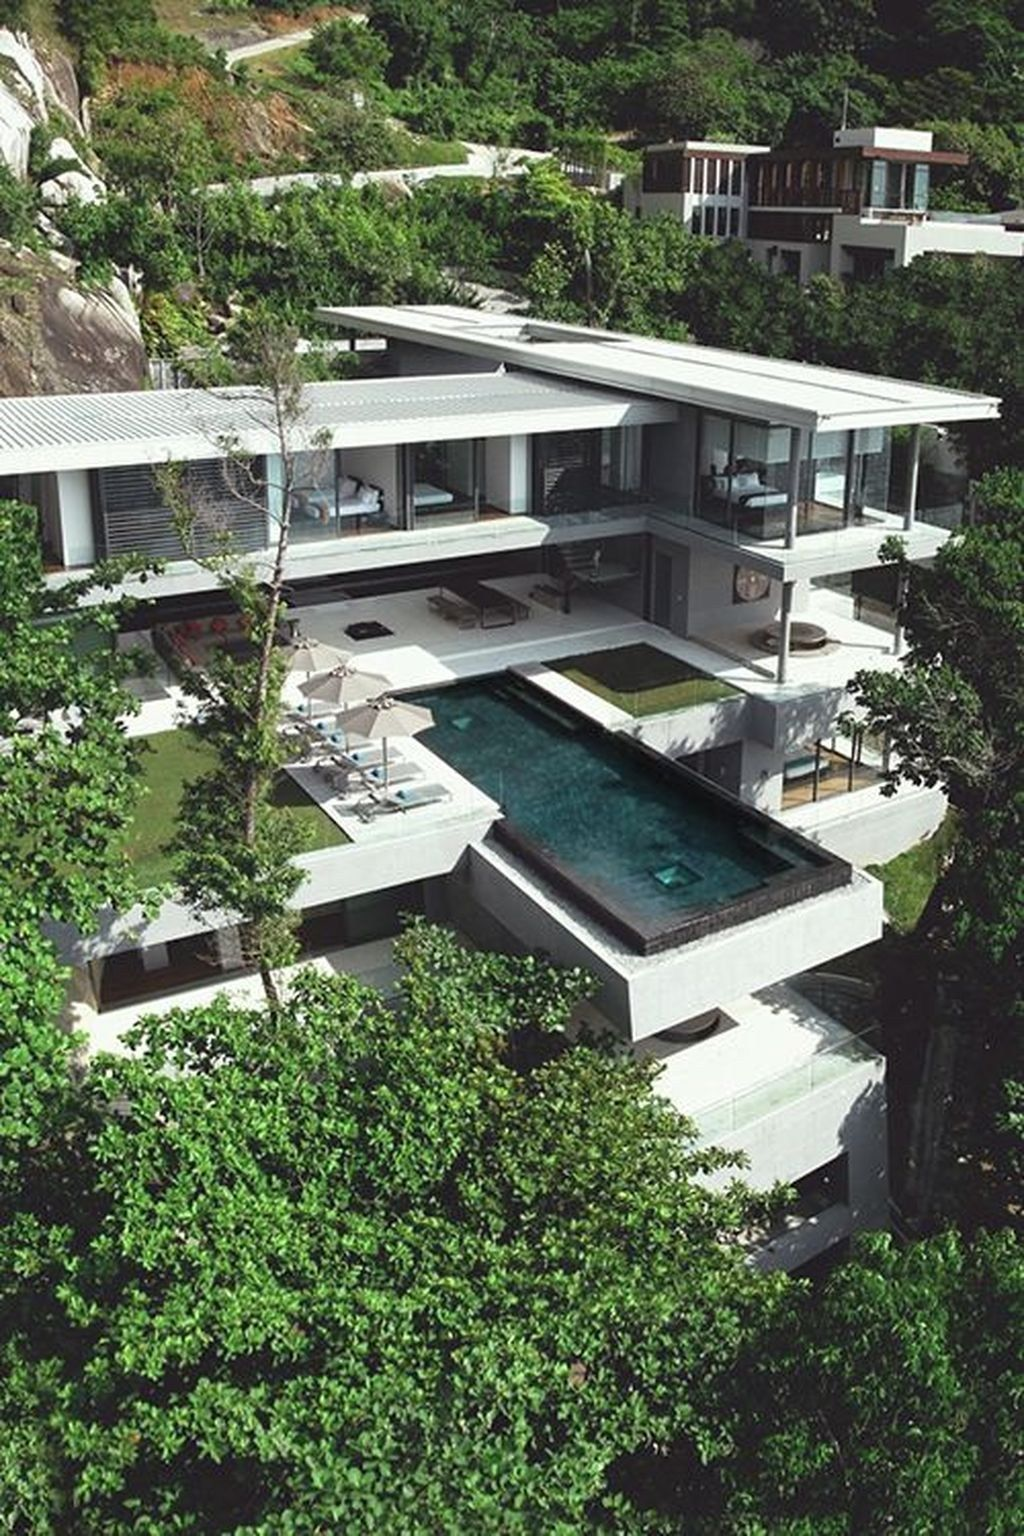 37 Stunning Modern House Design Ideas Modern House Plans Modern House Design Dream House Exterior